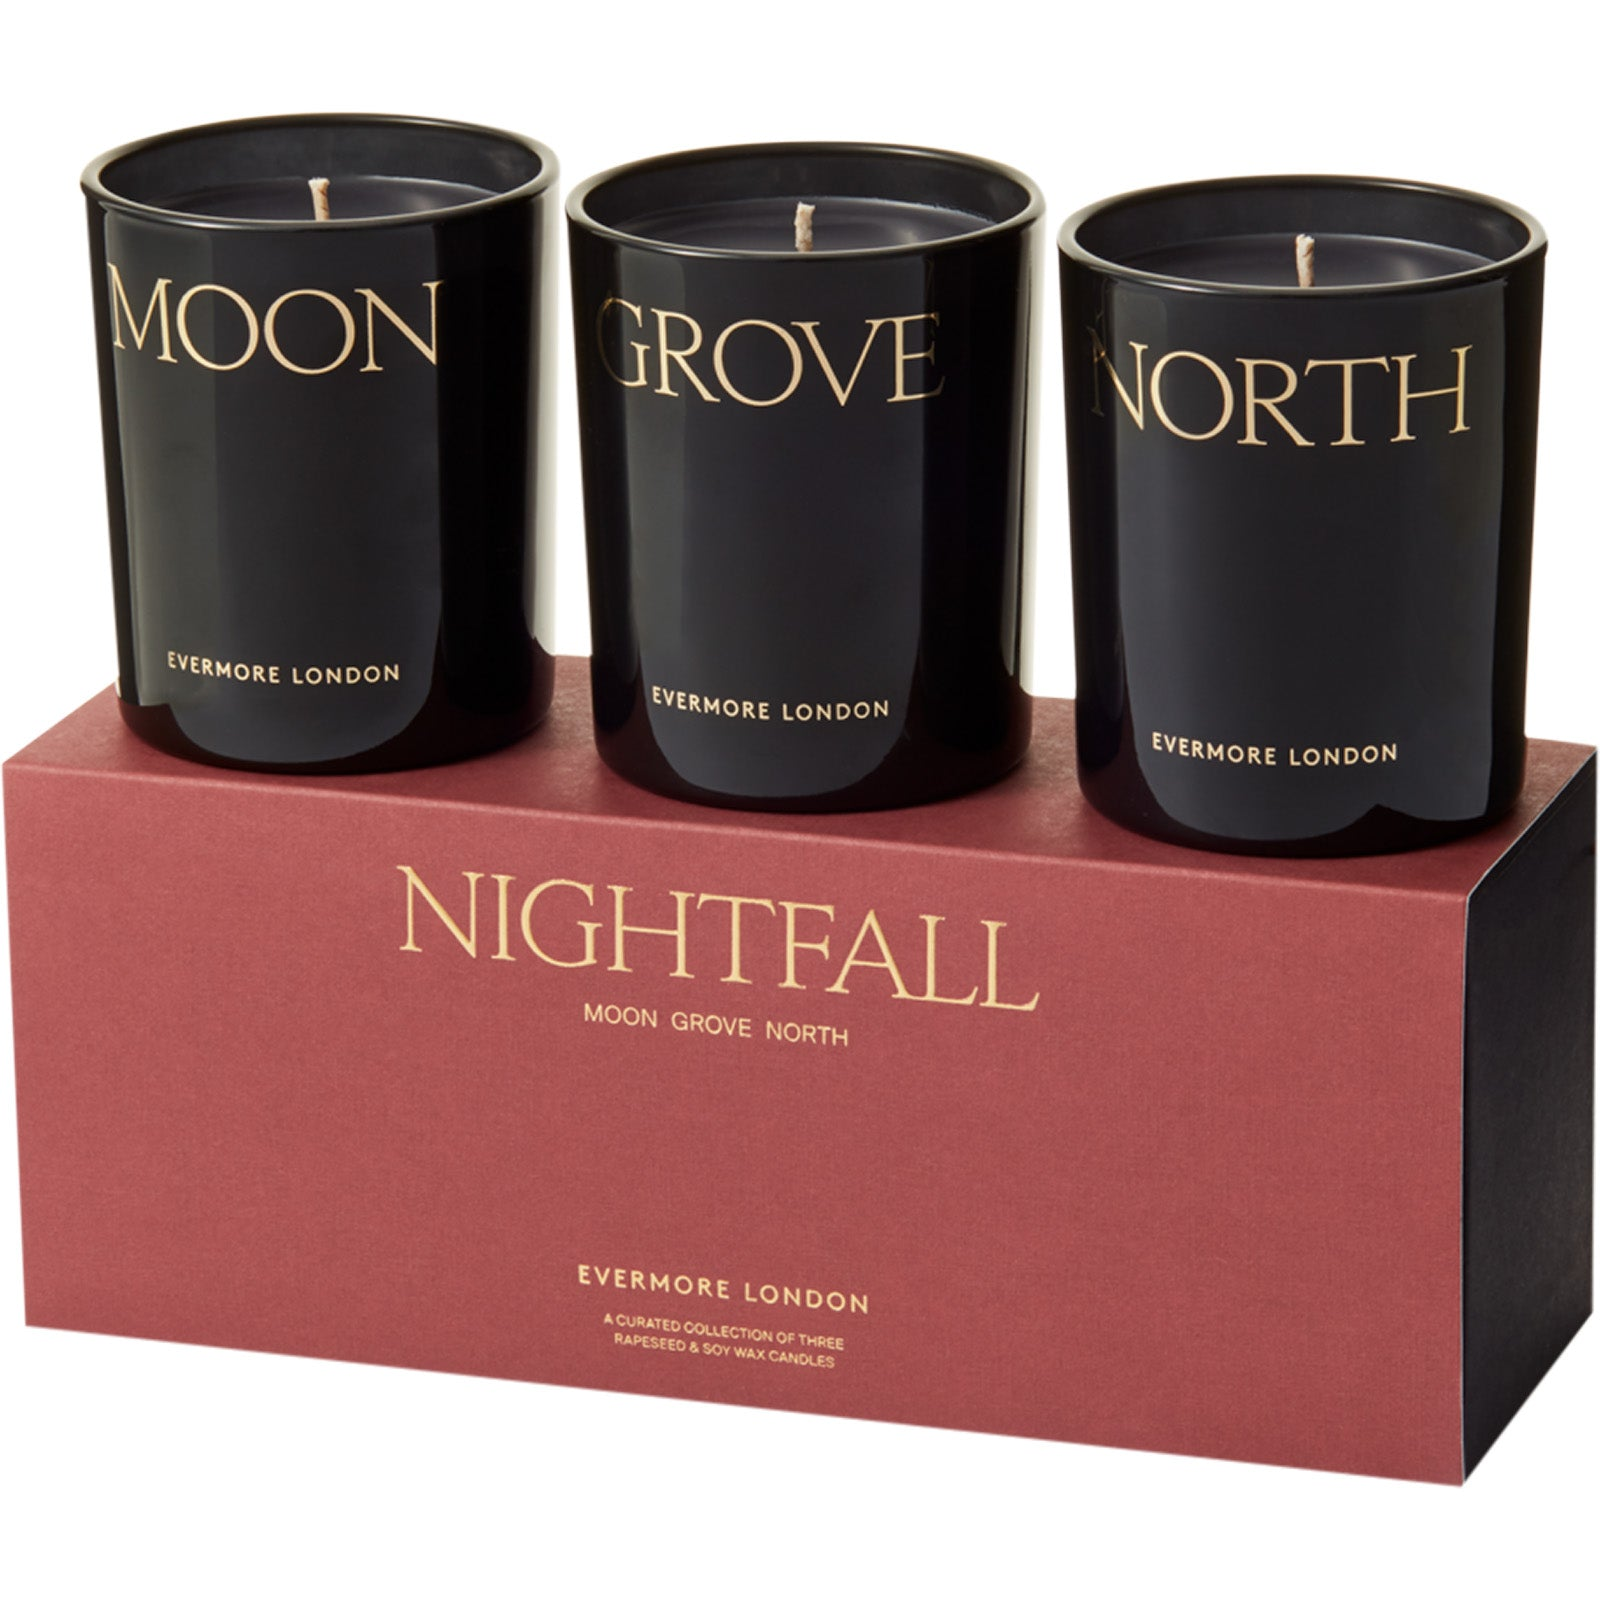 Evermore Nightfall Candle Gift Set - 12 Best Scented Candles & Fragrances For Your Home - Style Guide - LuxDeco.com